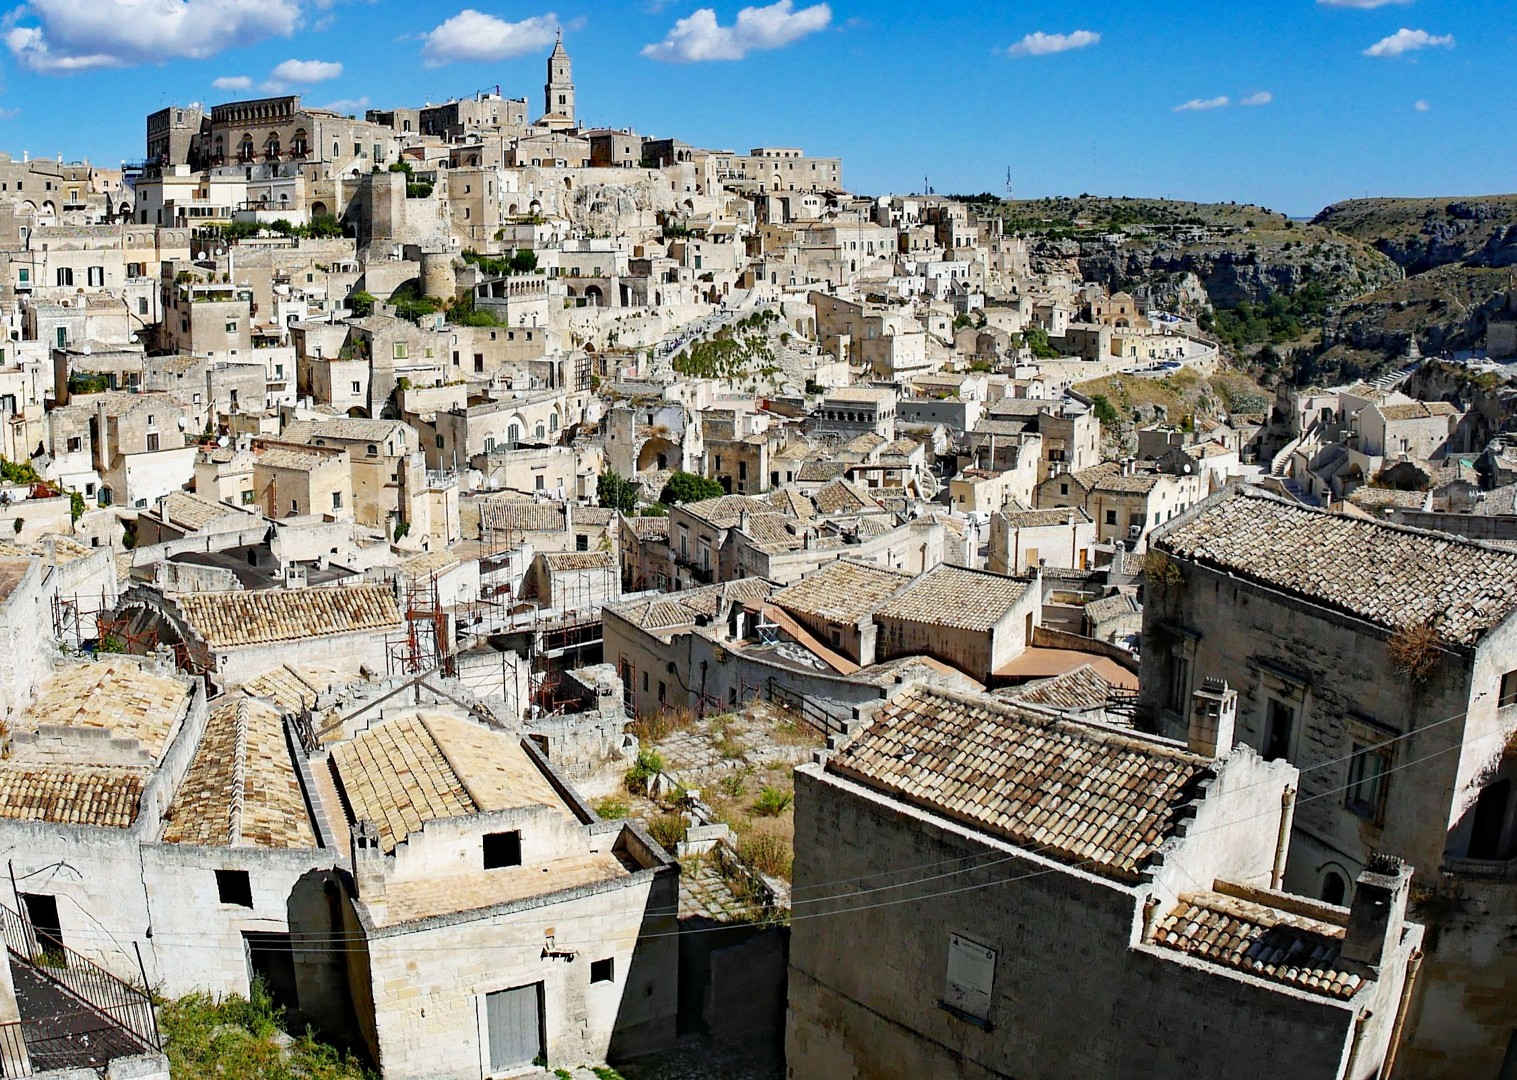 road-cycling-holiday-matera-panorama.jpg - Italy - Grand Traverse - South to North (22 days) - Guided Road Cycling Holiday - Road Cycling